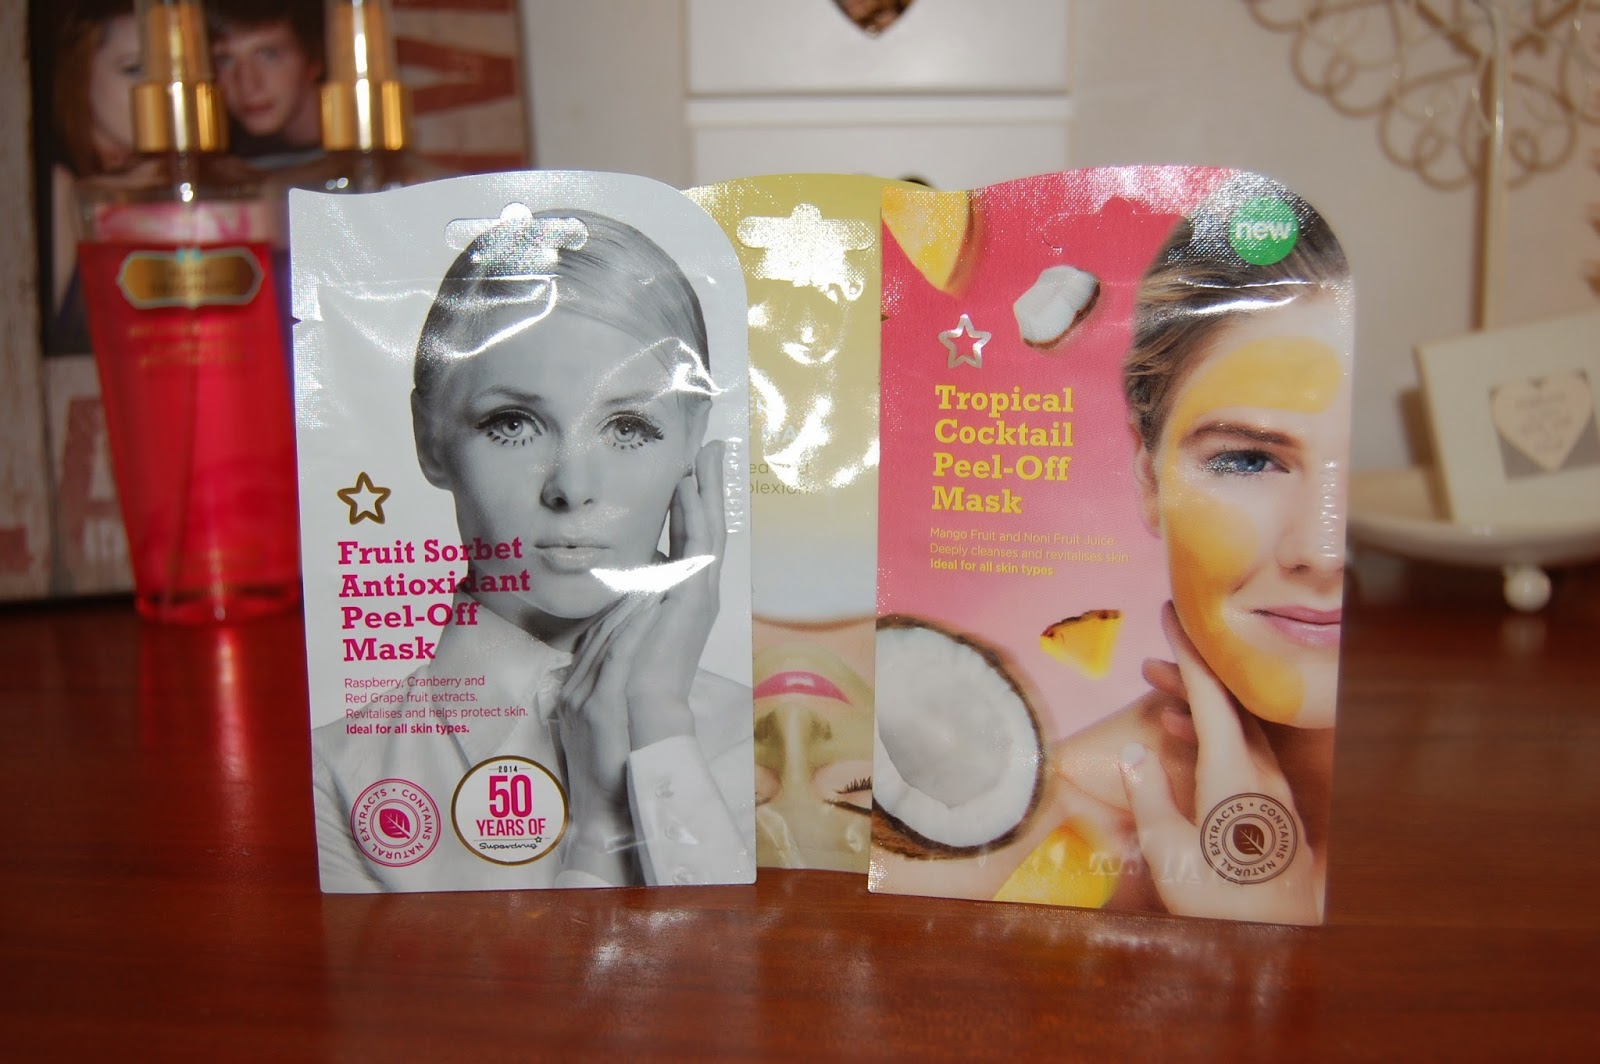 superdrug, facemasks, skincare, fruit sorbet, peel off face mask, boots